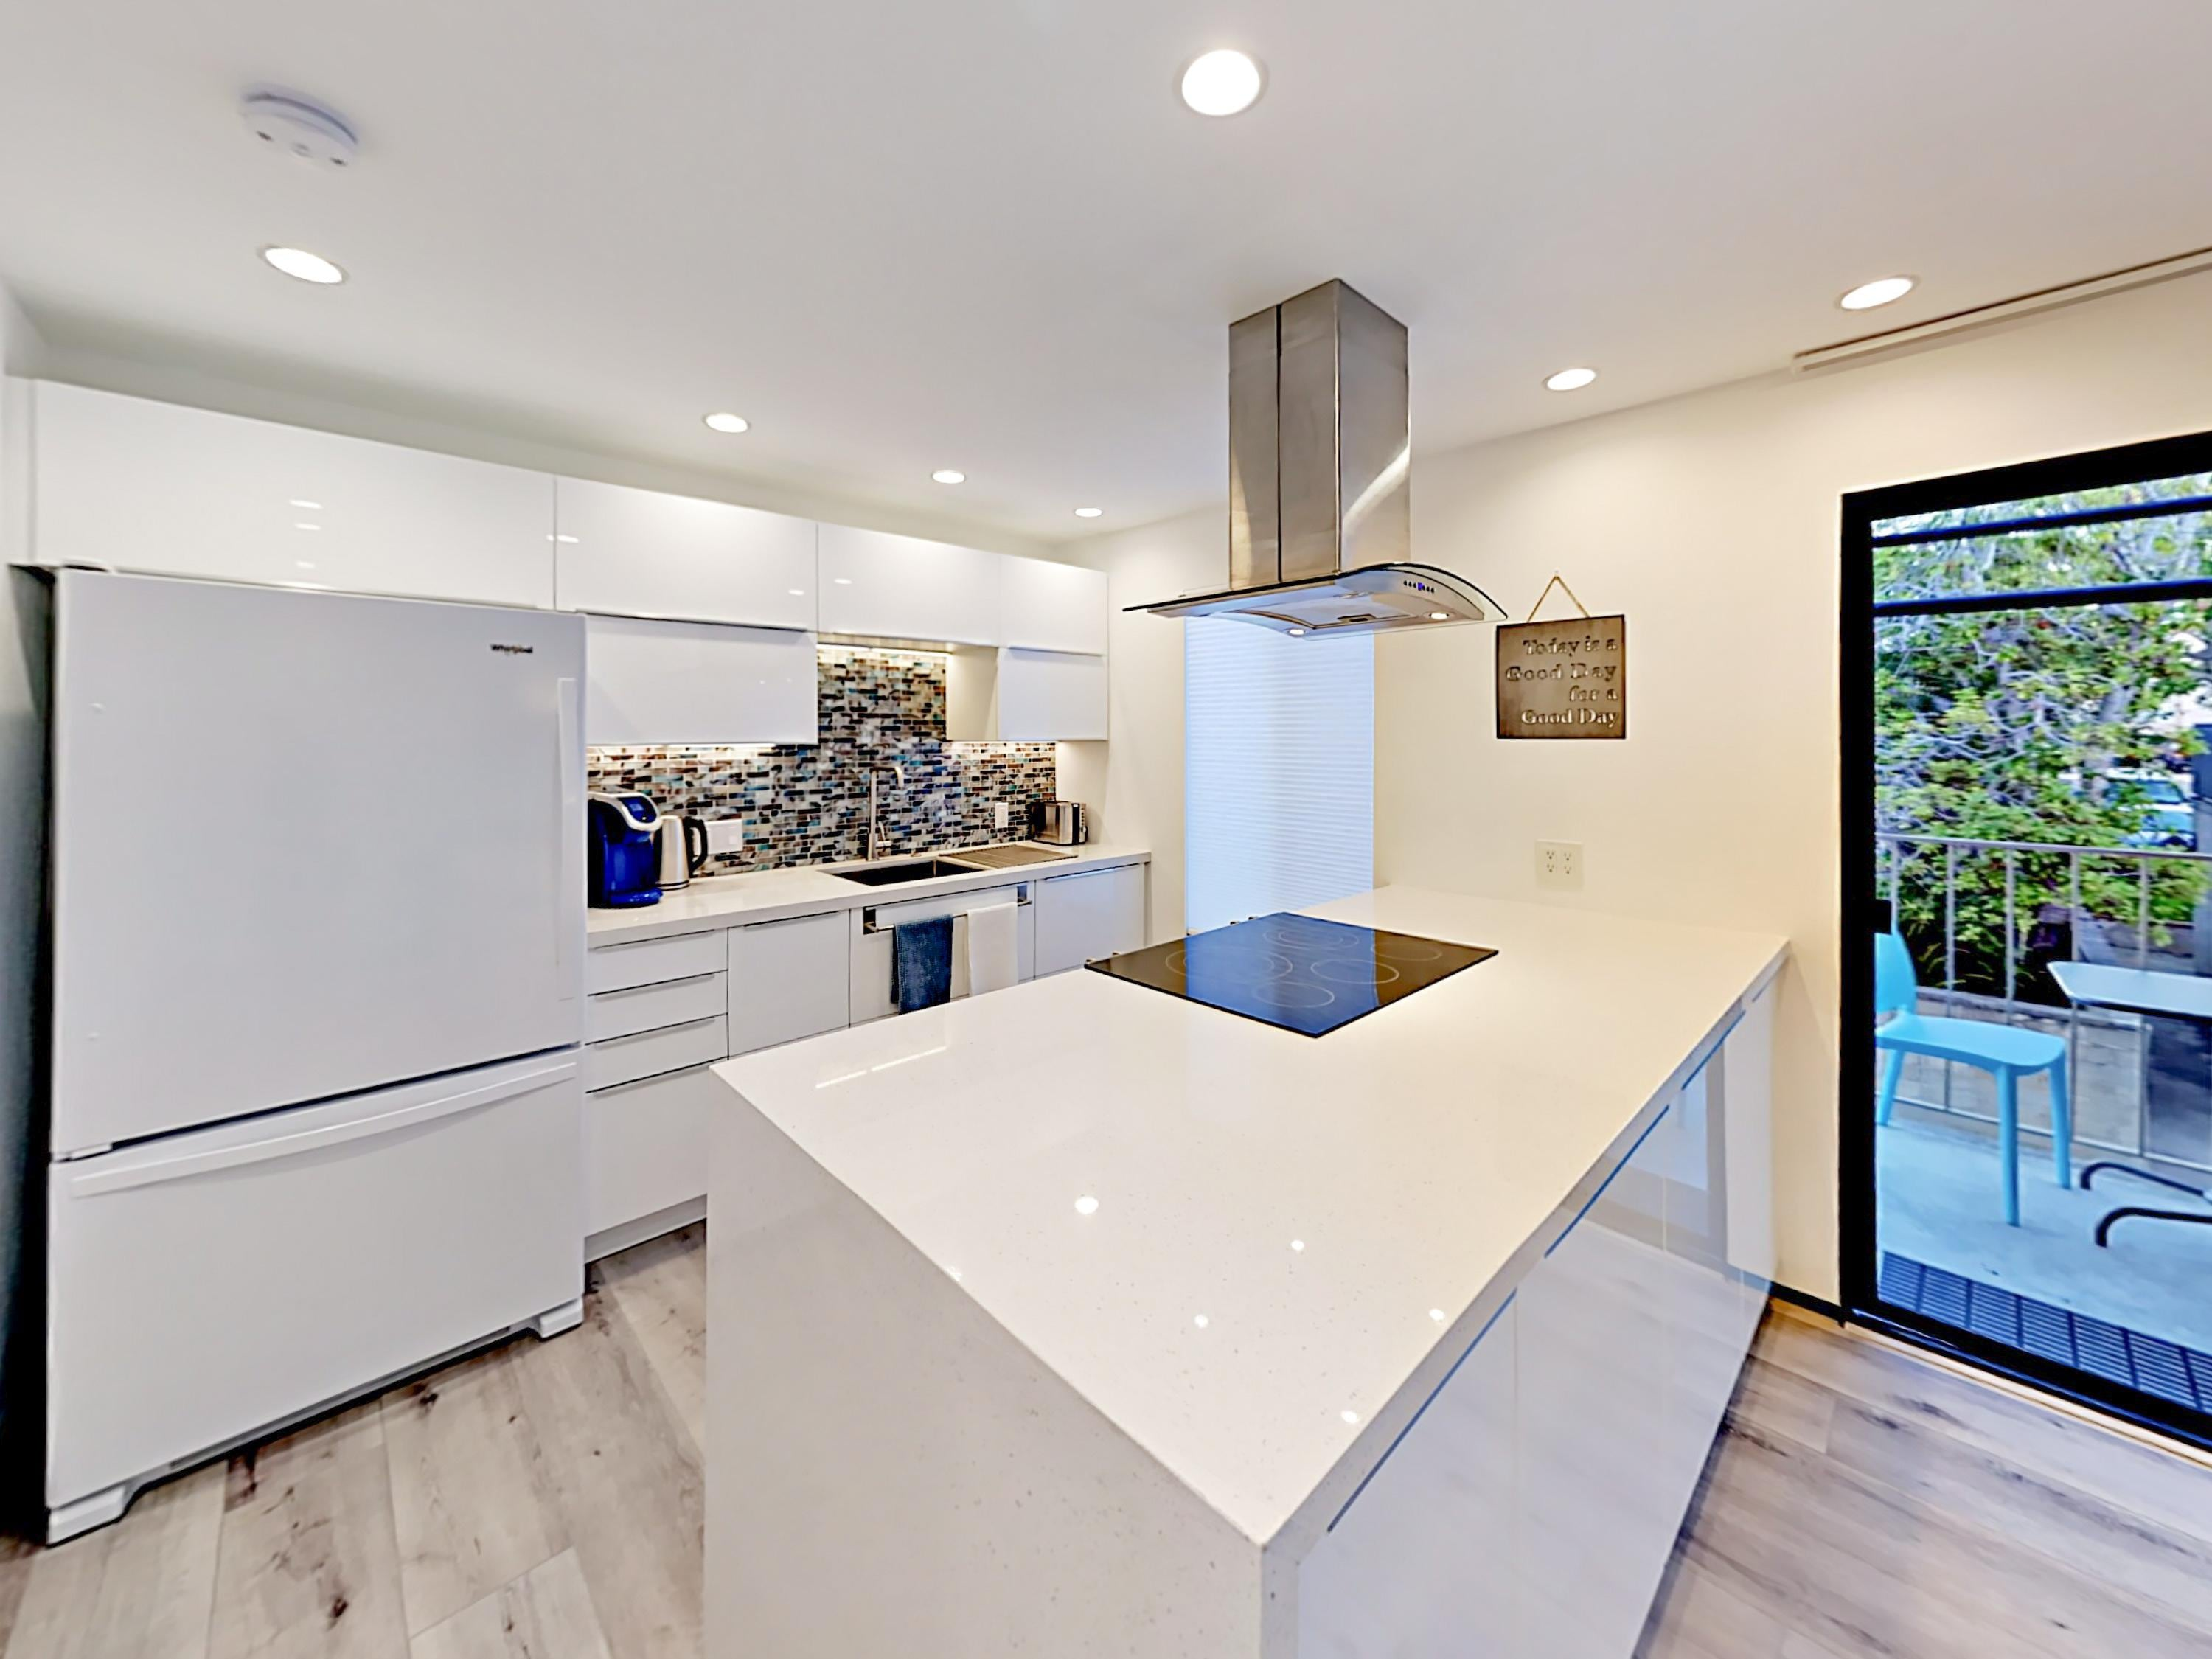 The Euro-style kitchen features sparkling quartz countertops and high-end appliances.